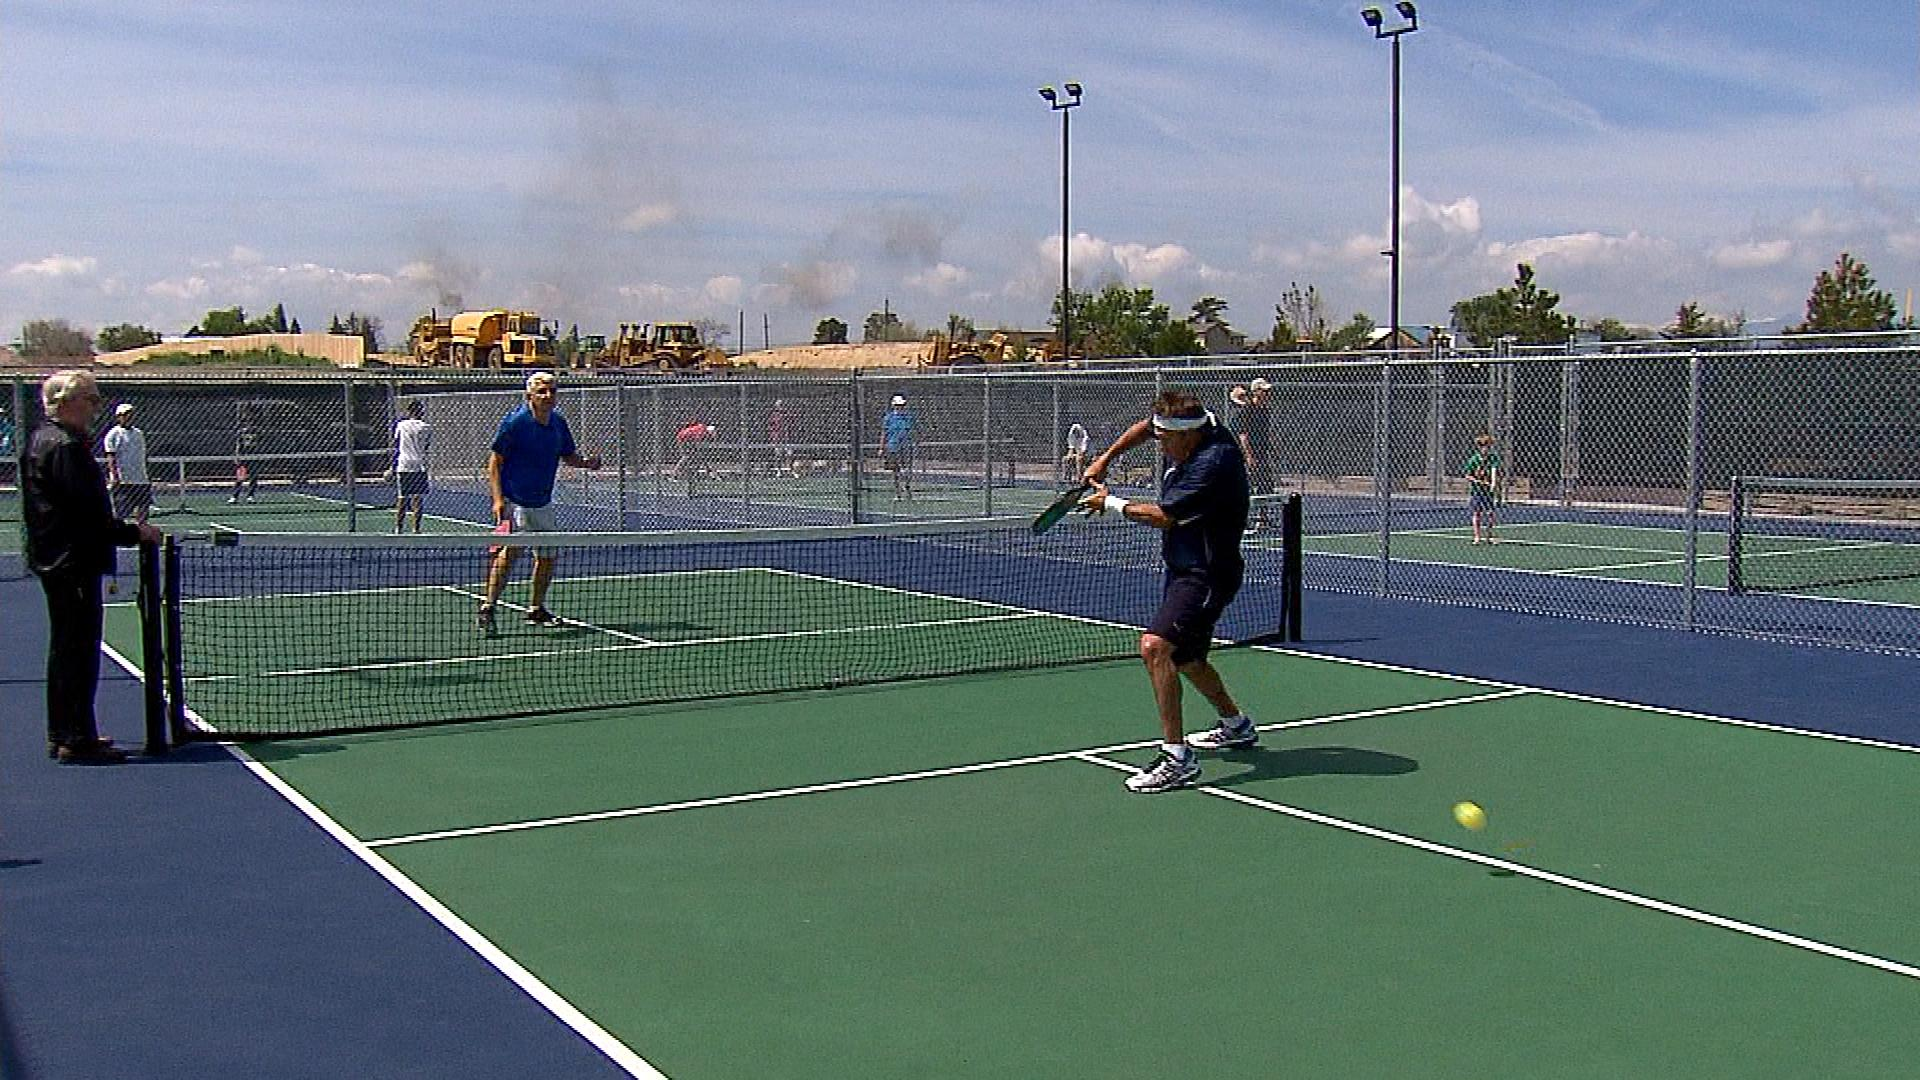 CBS4's Vic Lombardi taking his lumps at pickleball (credit: CBS)